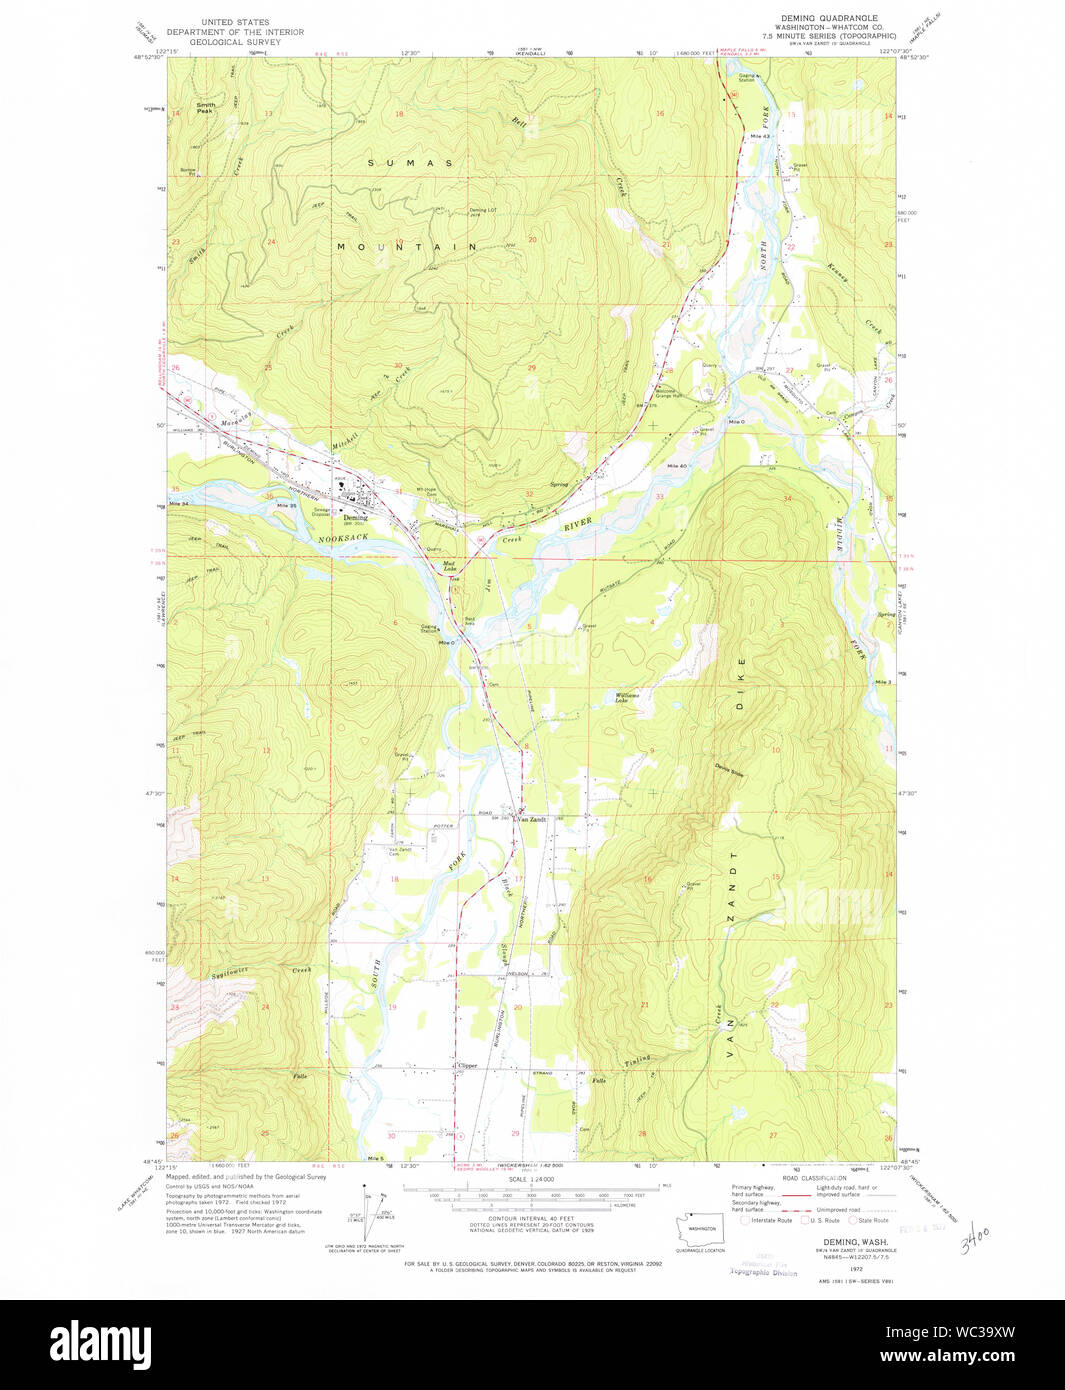 Deming Cut Out Stock Images & Pictures - Alamy on custer washington map, united states washington map, hamilton washington map, seattle washington map, renton washington map, plymouth washington map, winslow washington map, greenbank washington map, columbus washington map, lynnwood washington map, rosburg washington map, richmond washington map, tukwila washington map, wilson washington map, skamokawa washington map, alger washington map, crystal mountain washington map, curlew washington map, bellevue washington map, clayton washington map,